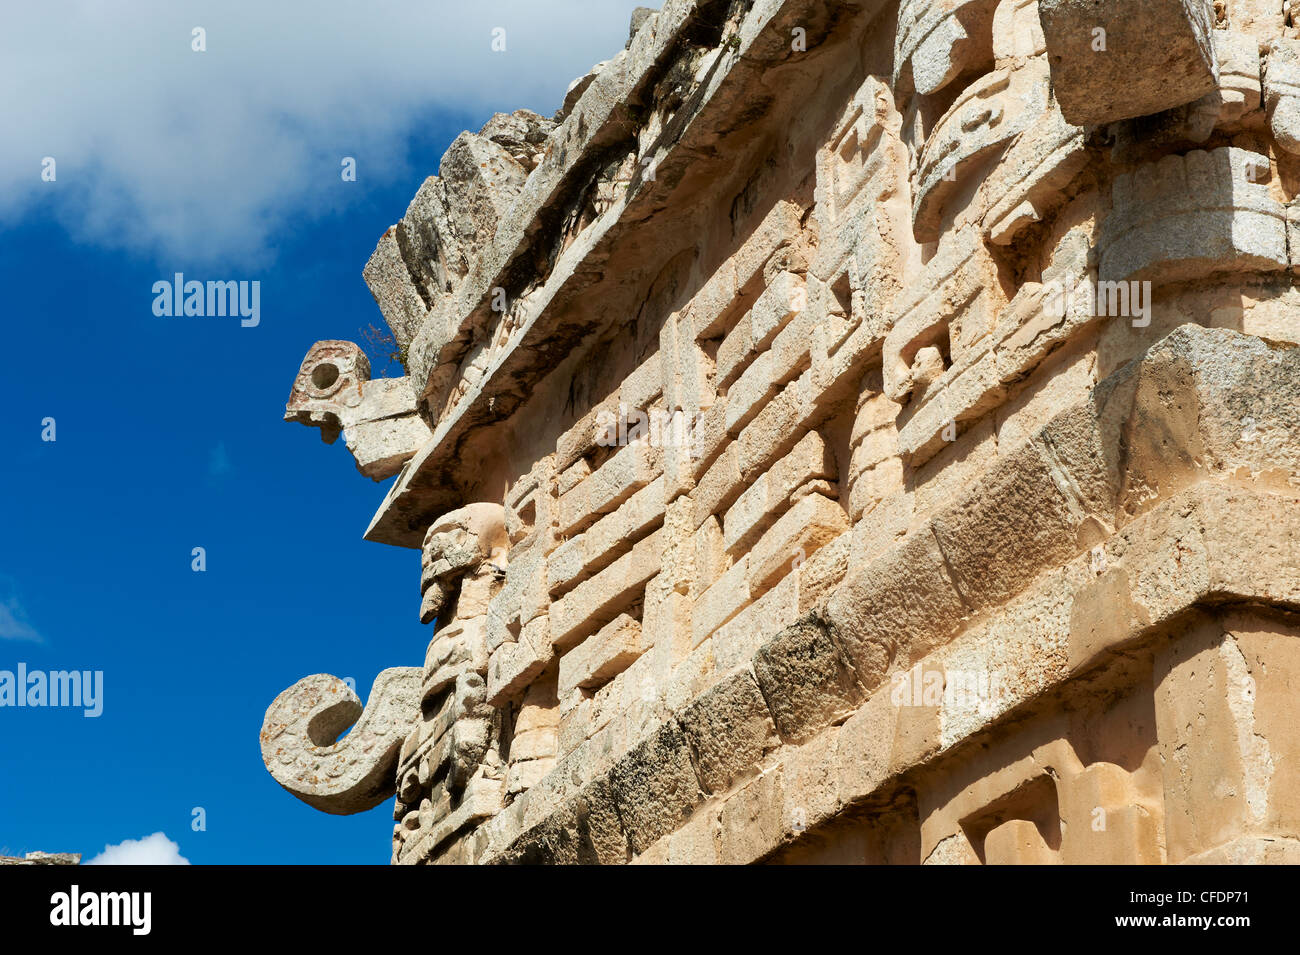 Mask of Chac Mool, god of the rain, on the church in the ancient mayan ruins of Chichen Itza, Yucatan, Mexico - Stock Image